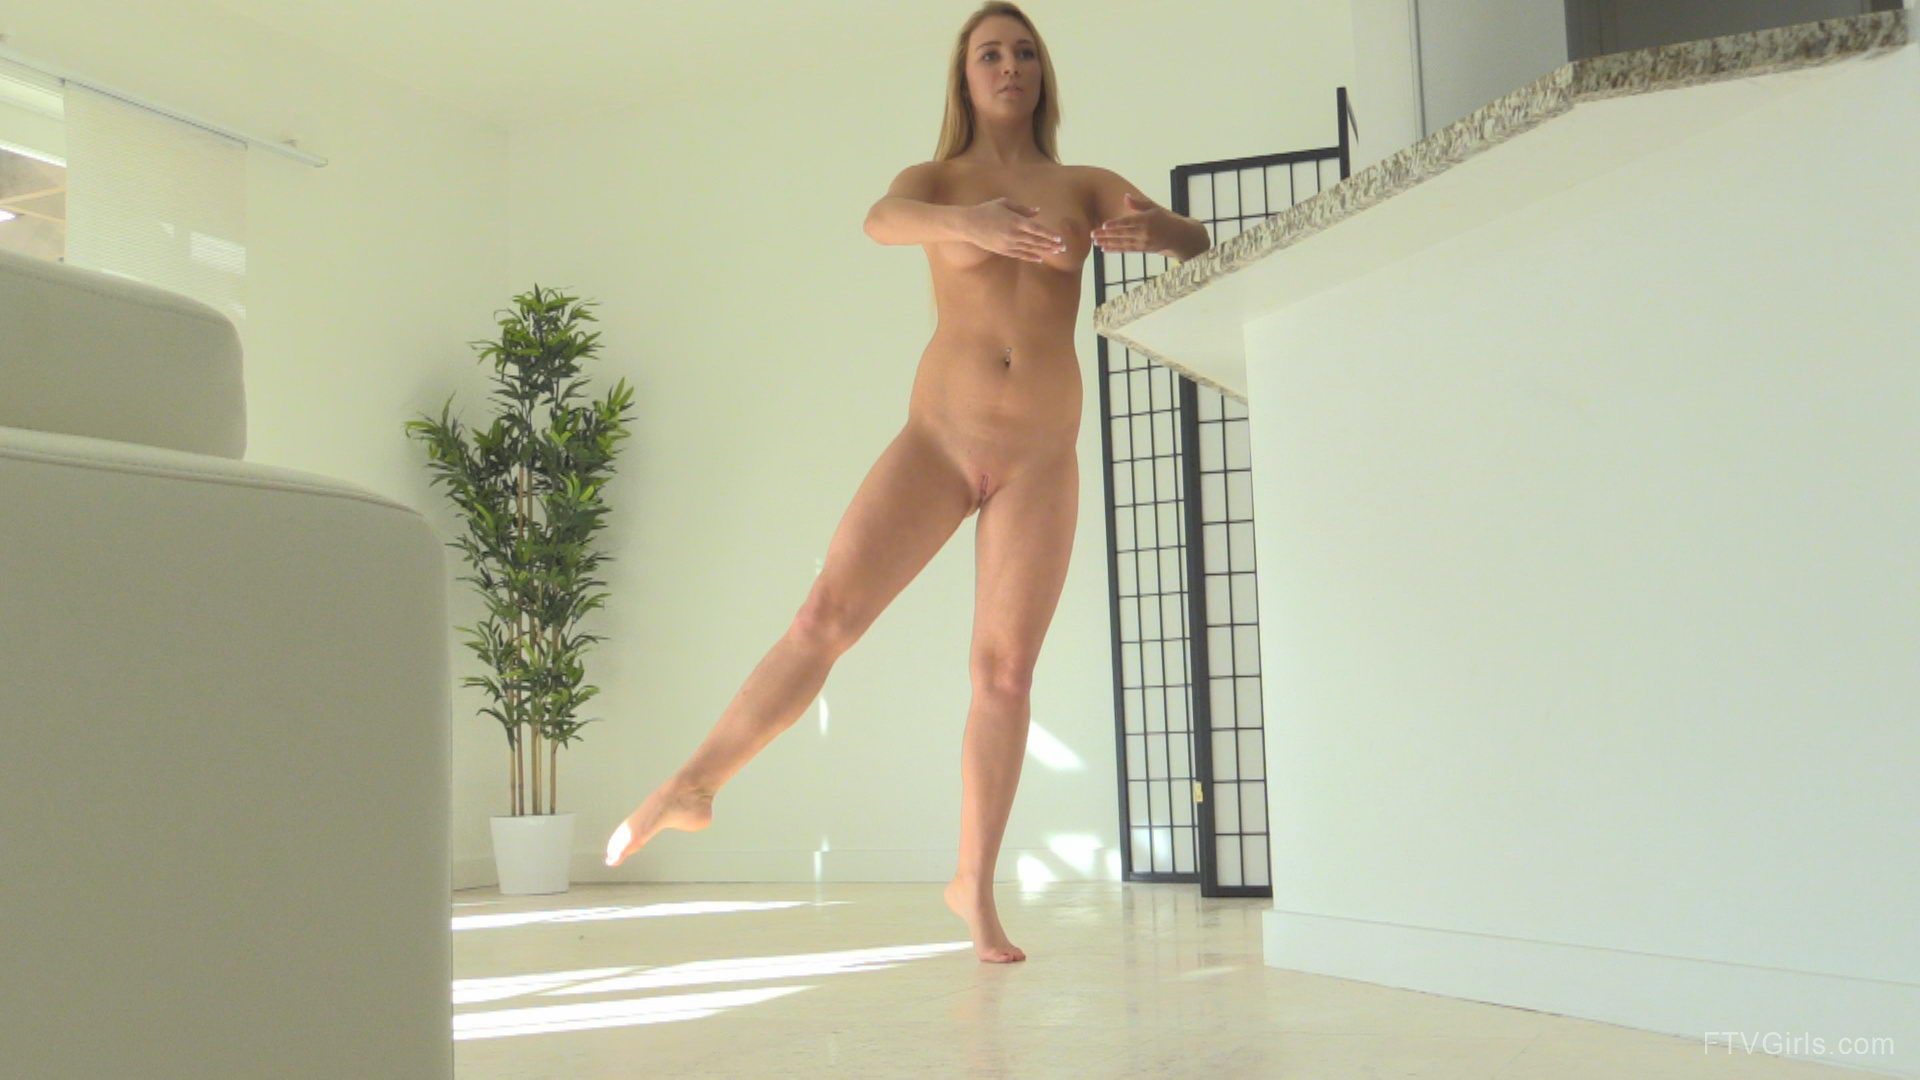 Young FTV Girl Zoey Dancing Naked Like Ballerina